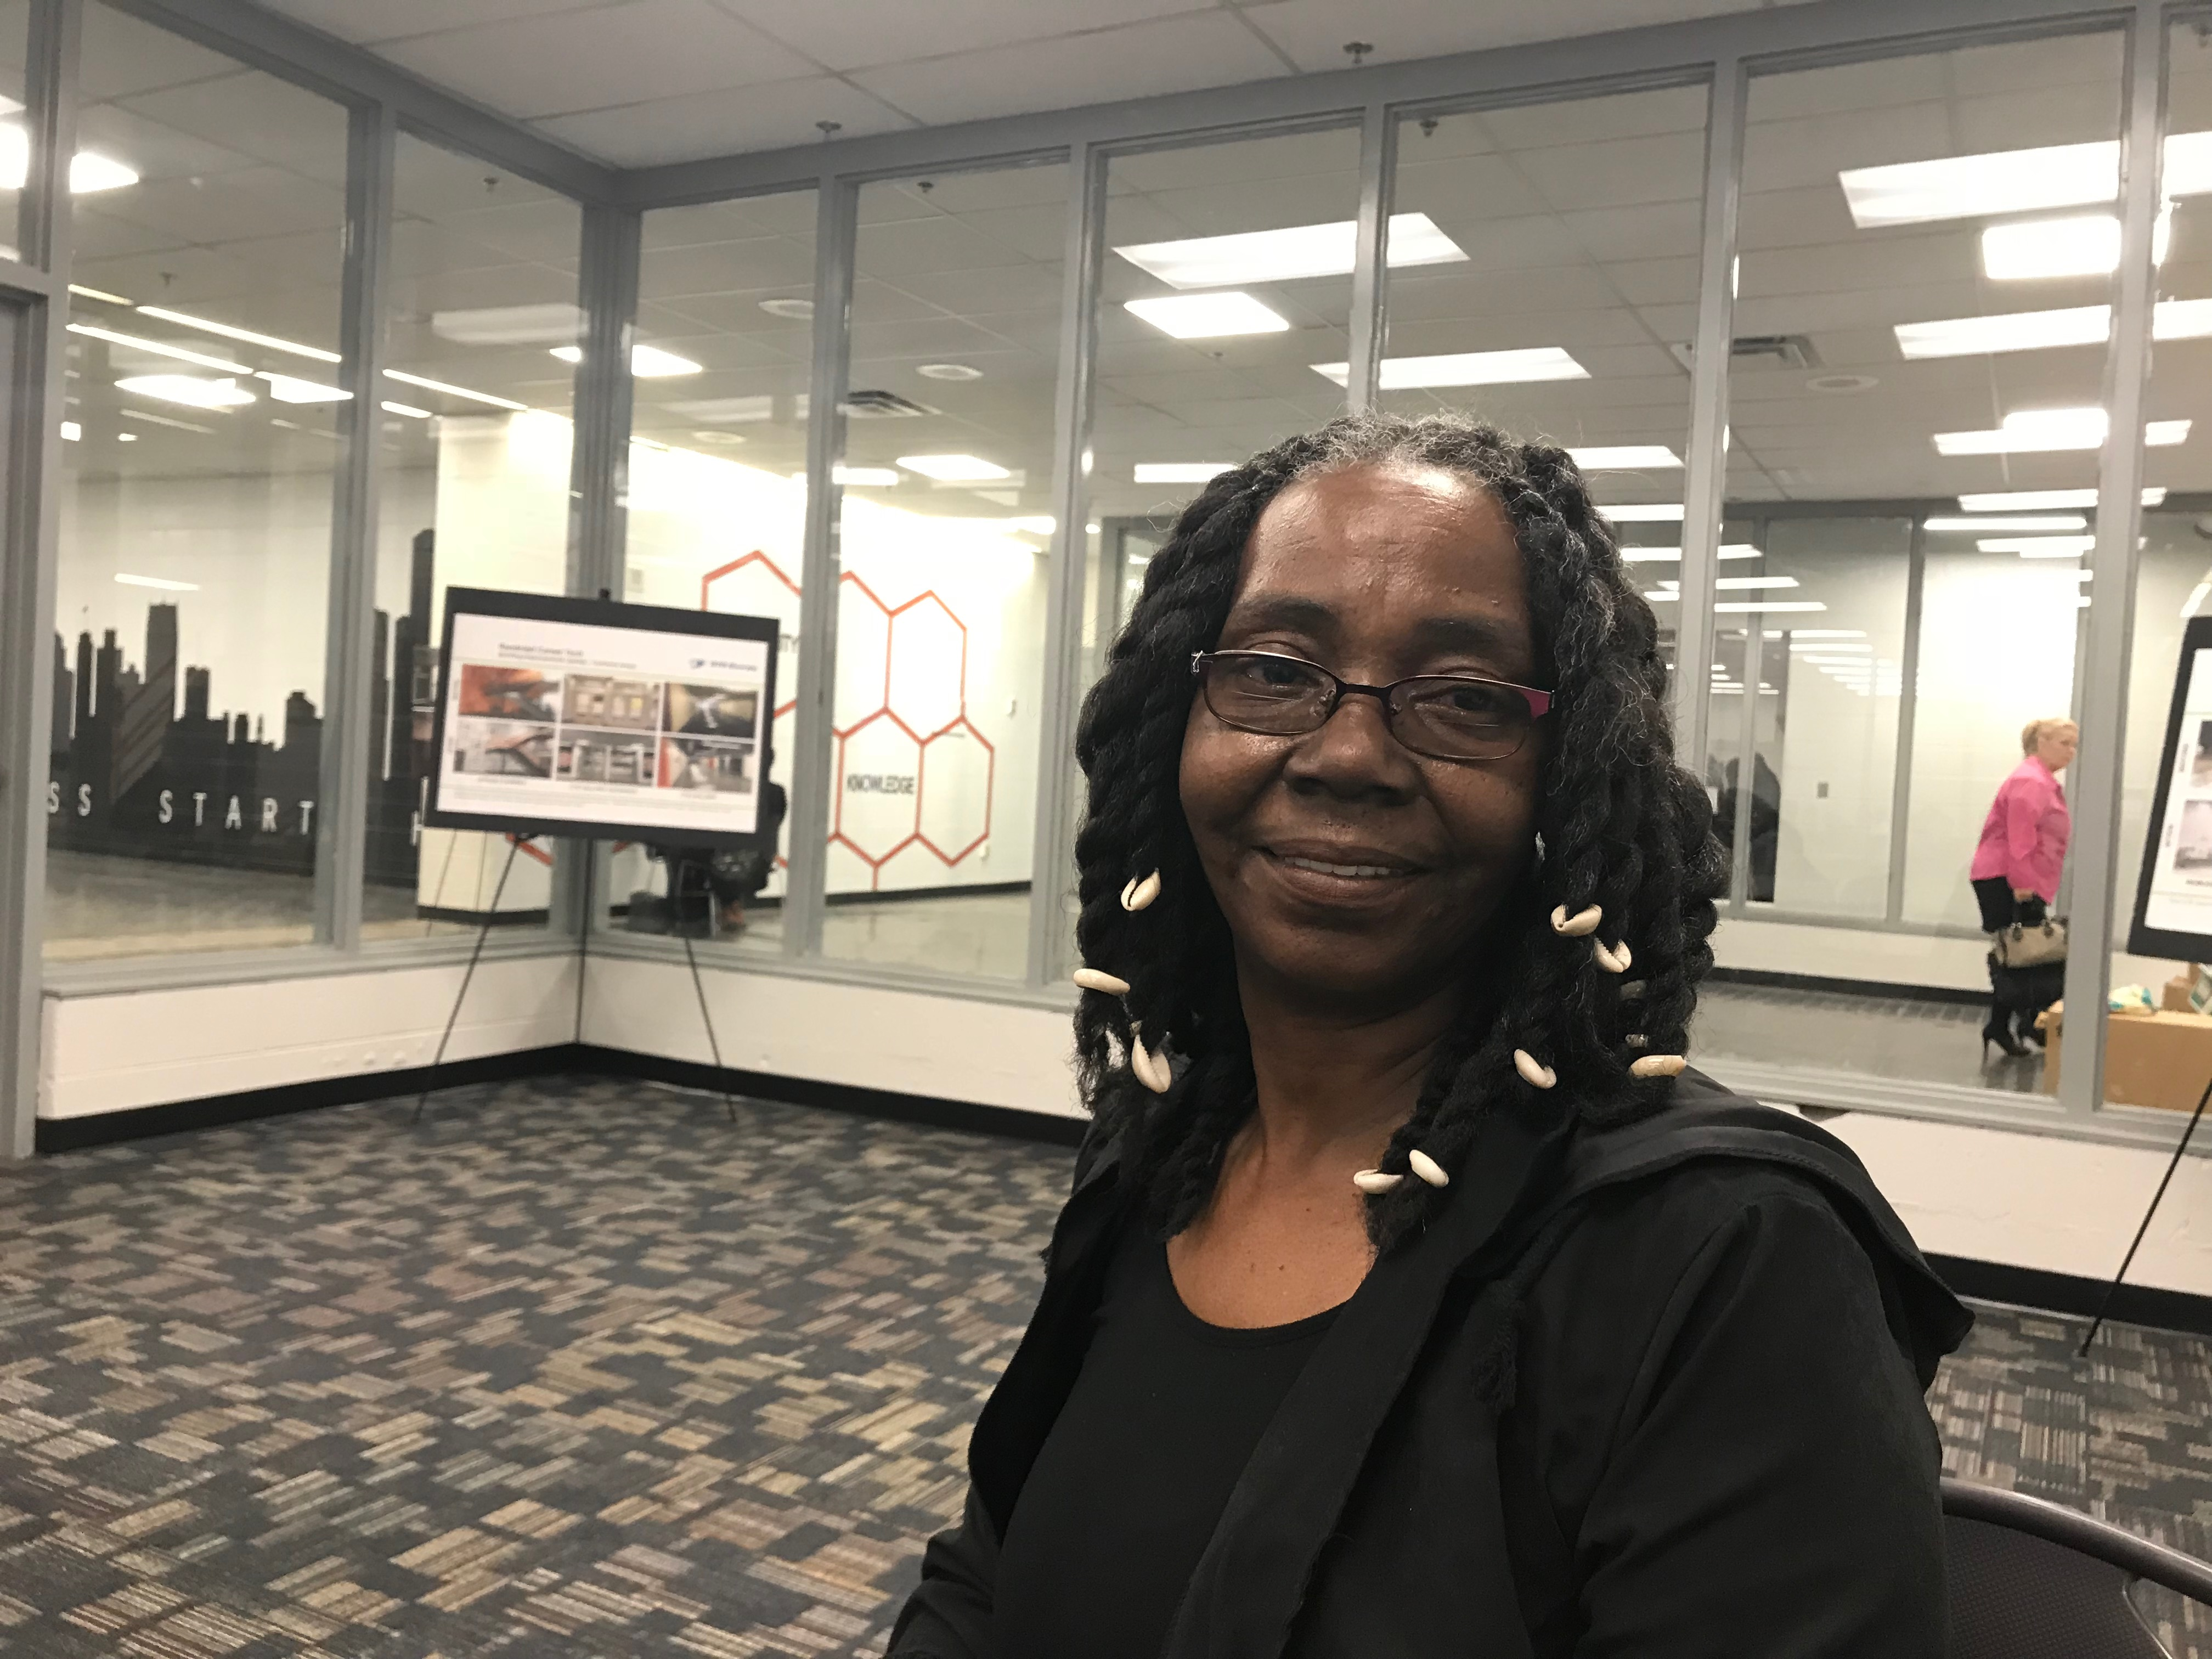 Sandra Cooper ponders her past as a district teacher, and hopes for a brighter future upon her return